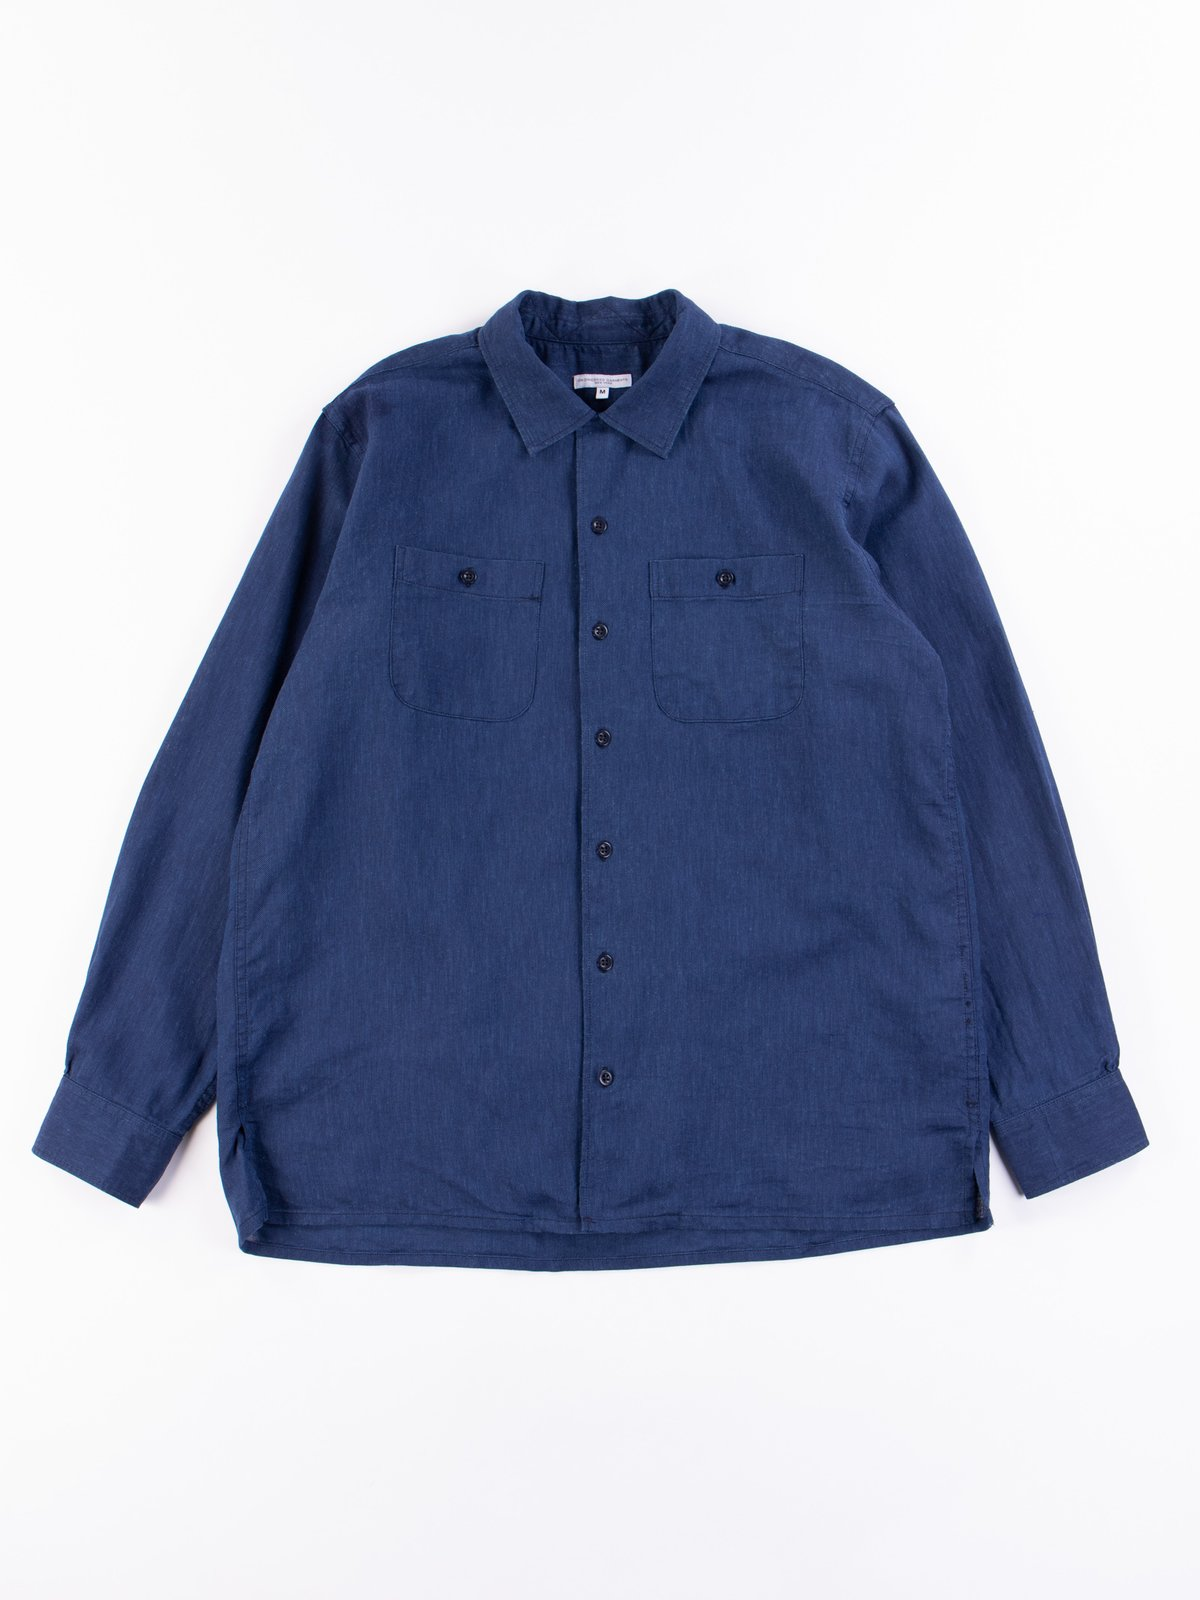 Navy CL Solid Classic Shirt - Image 1